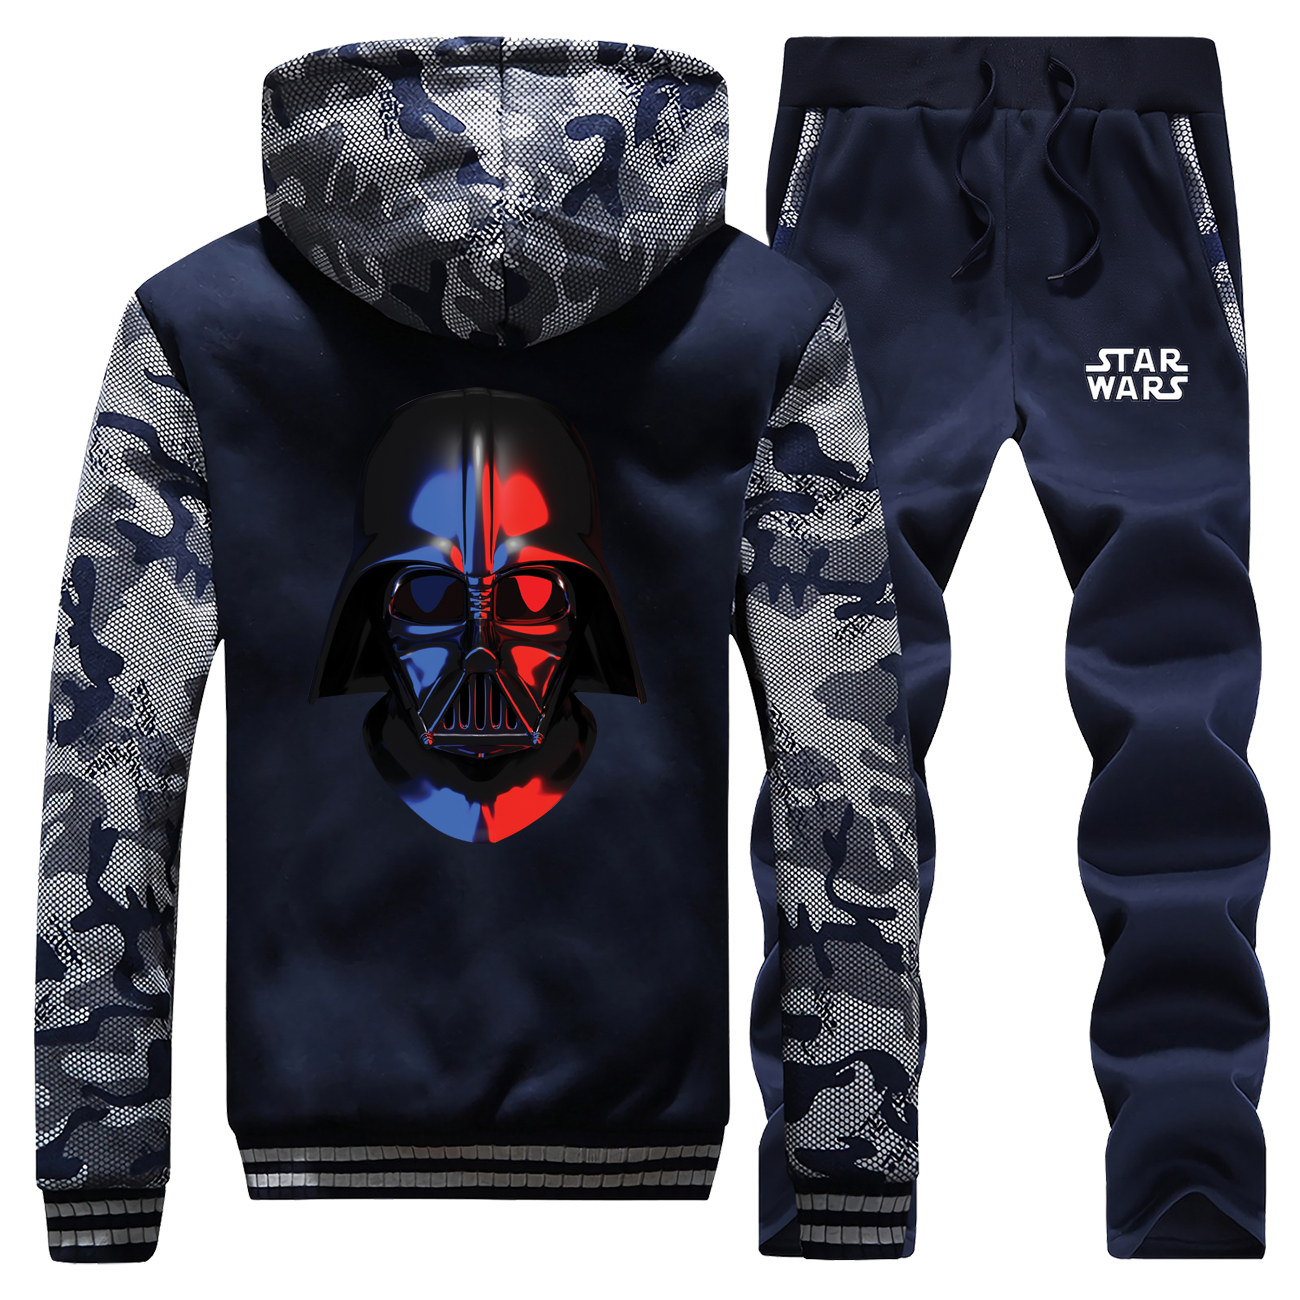 Darth Vader Star Wars New Winter 2019 Men Hoodie Camouflage Coat Thick Suit Sportswear Hip Hop Warm Jackets+Pants 2 Piece Set